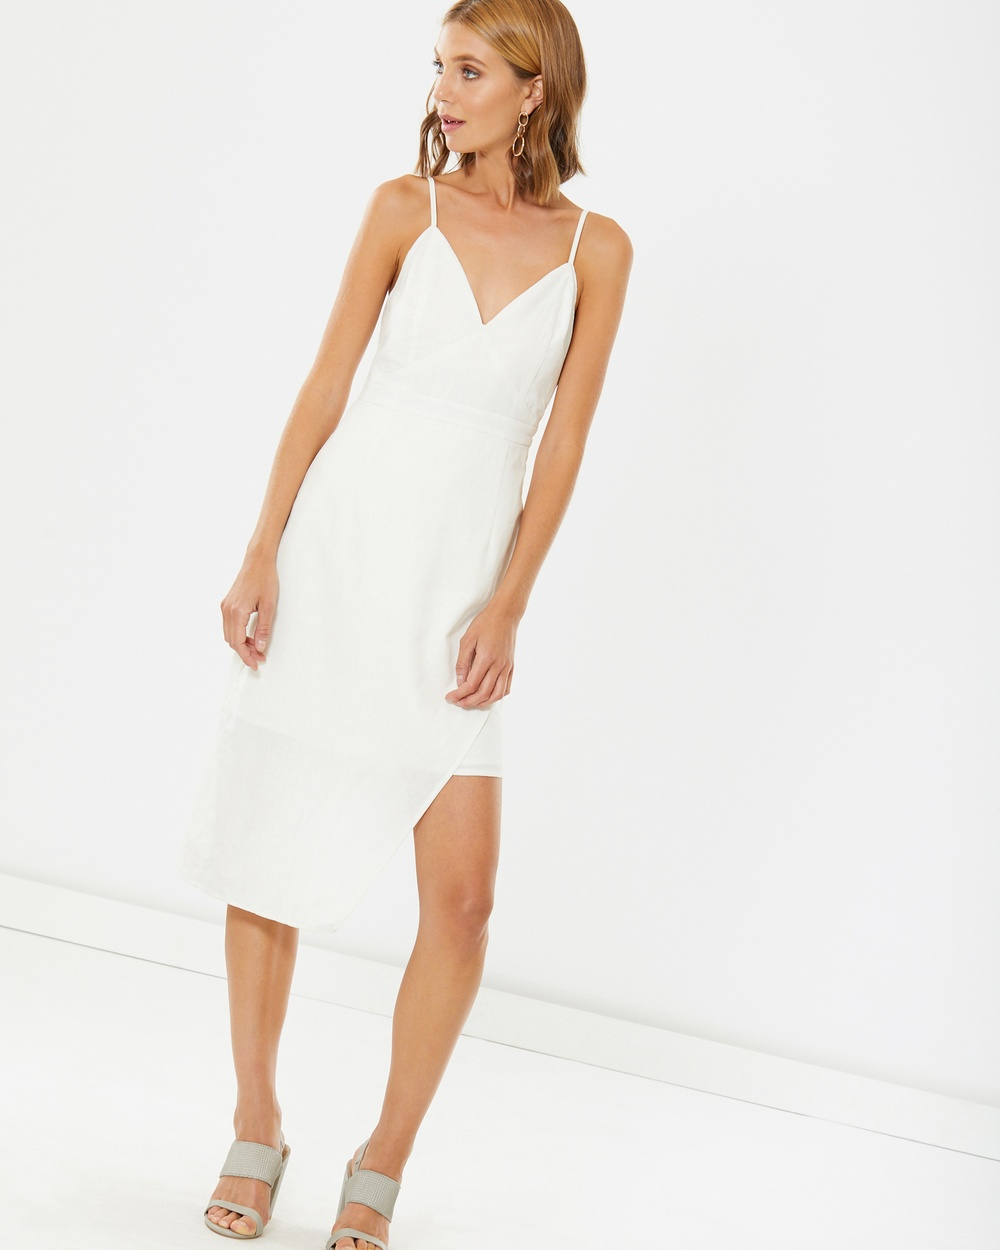 Calli Zoey Panelled Dress Dresses White Zoey Panelled Dress